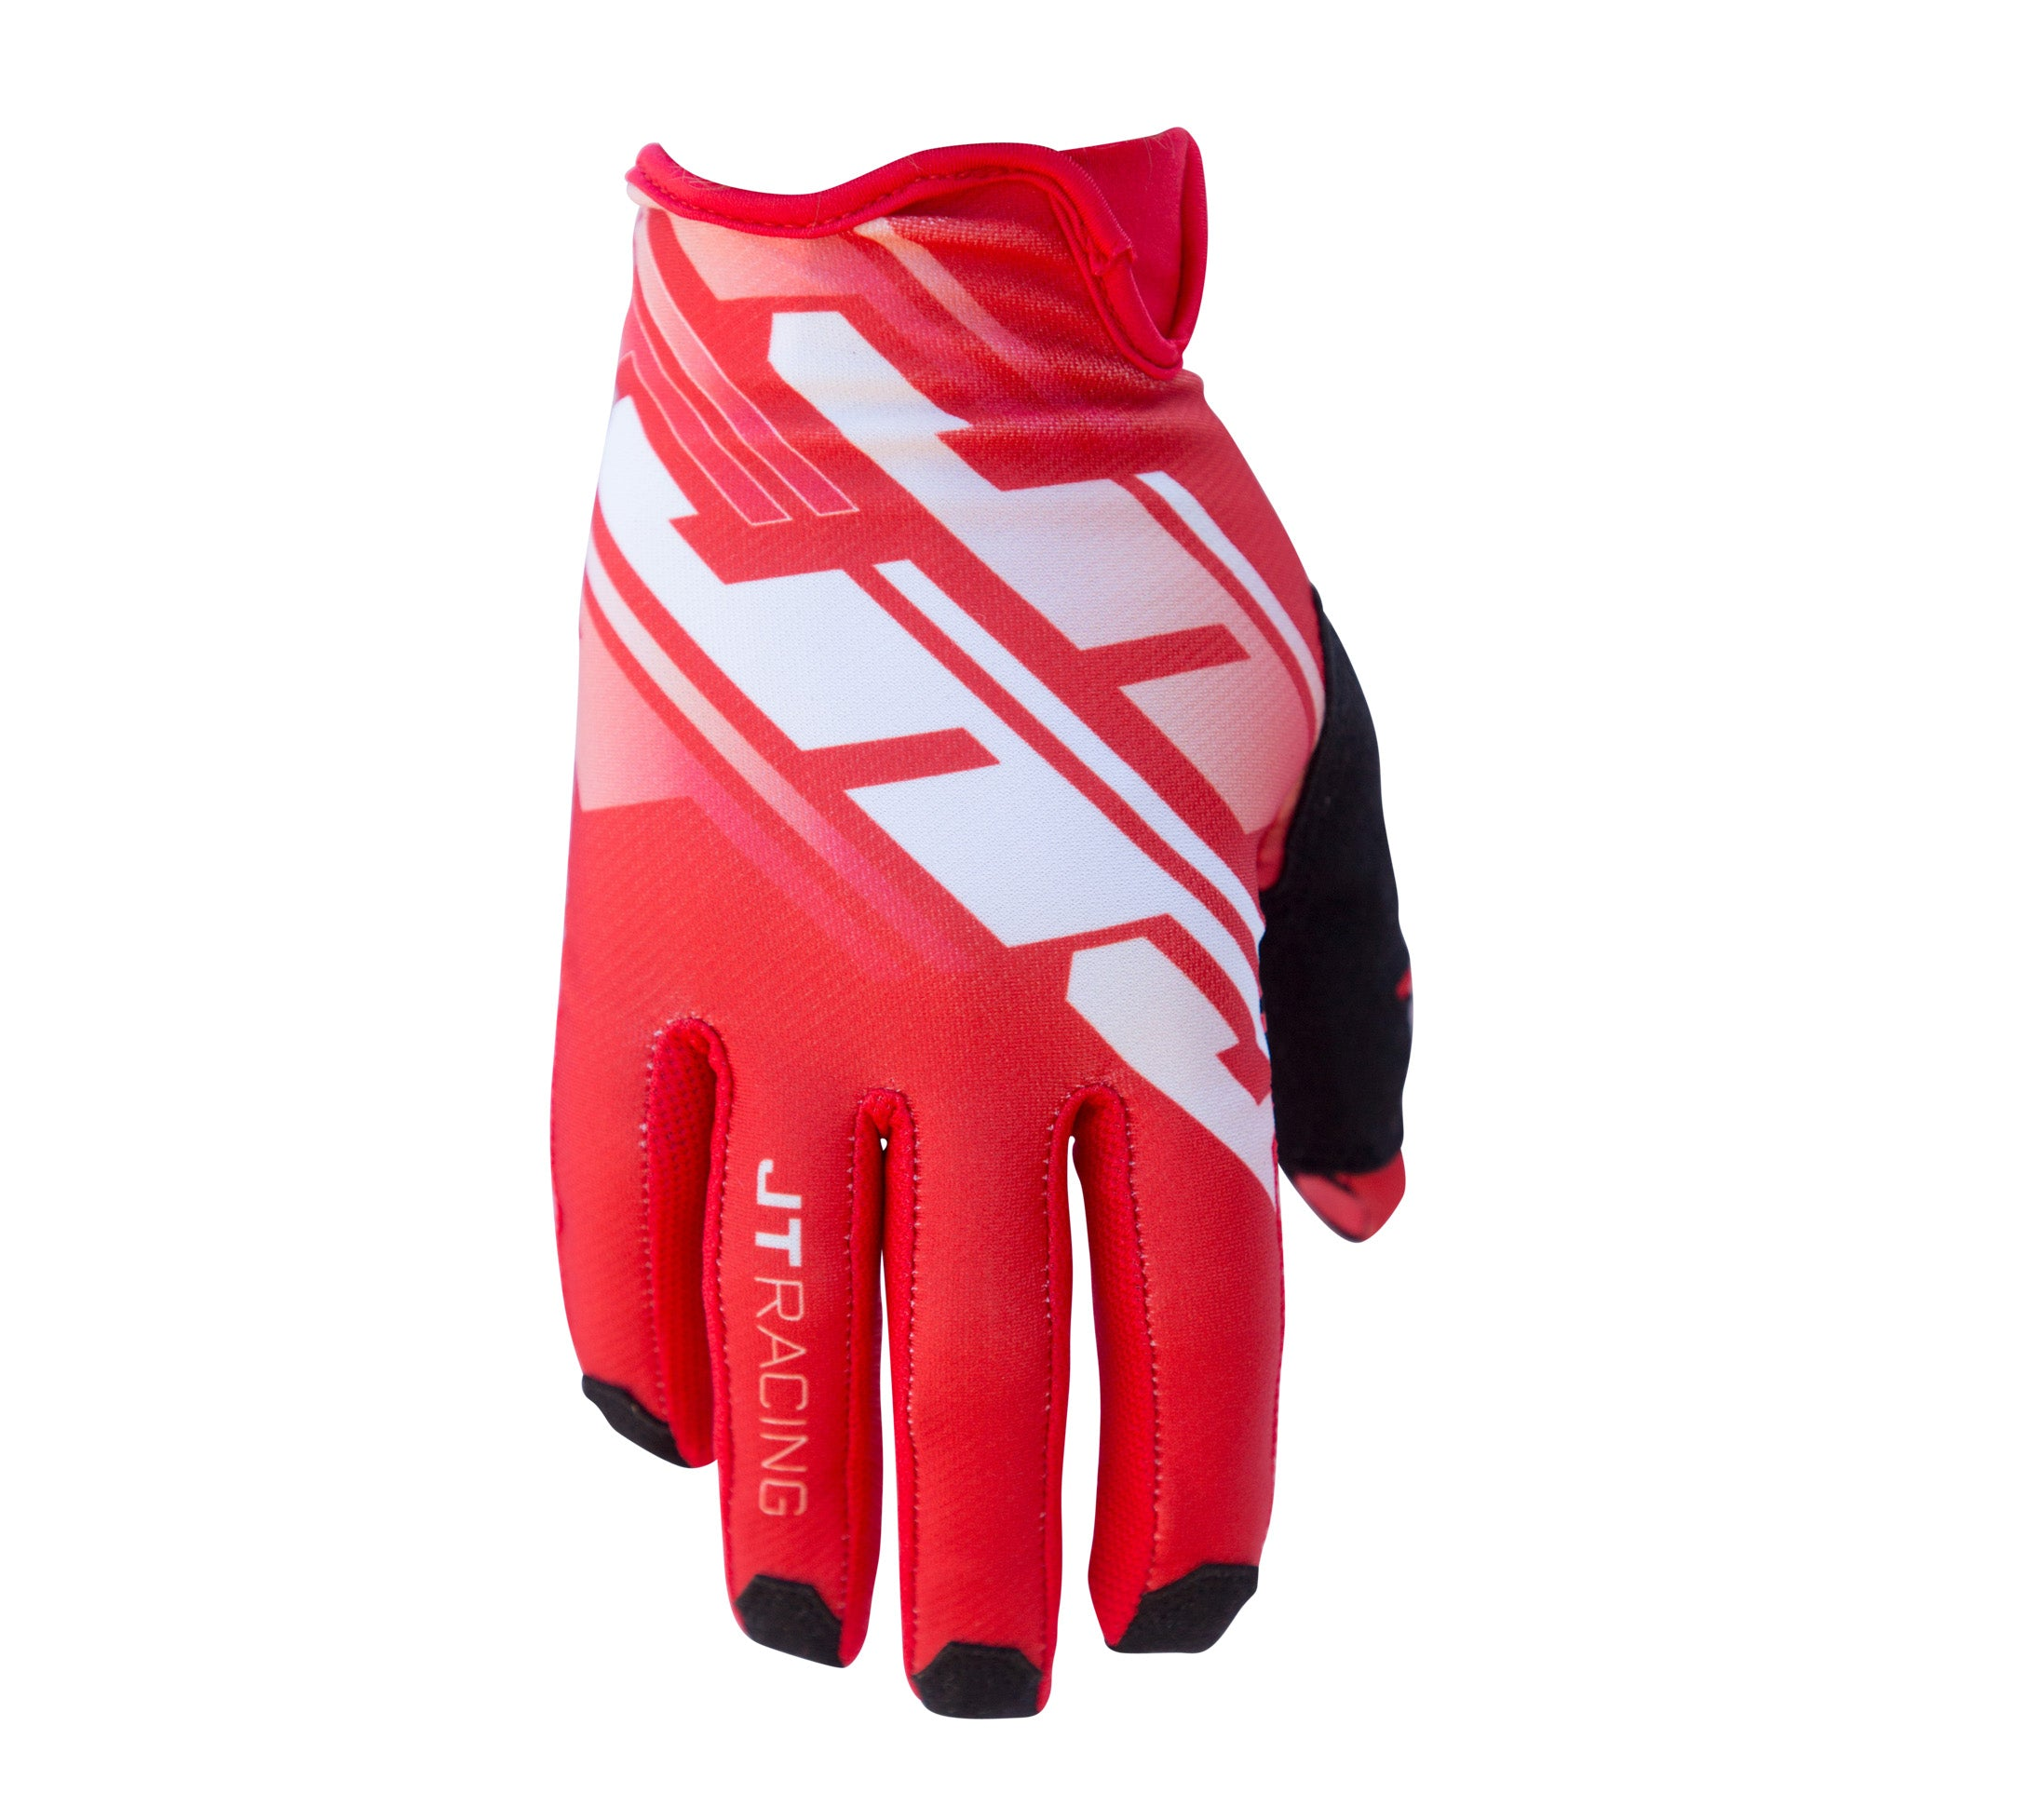 JT Racing USA-Pro-Fit Tracker, Glove, Red/White